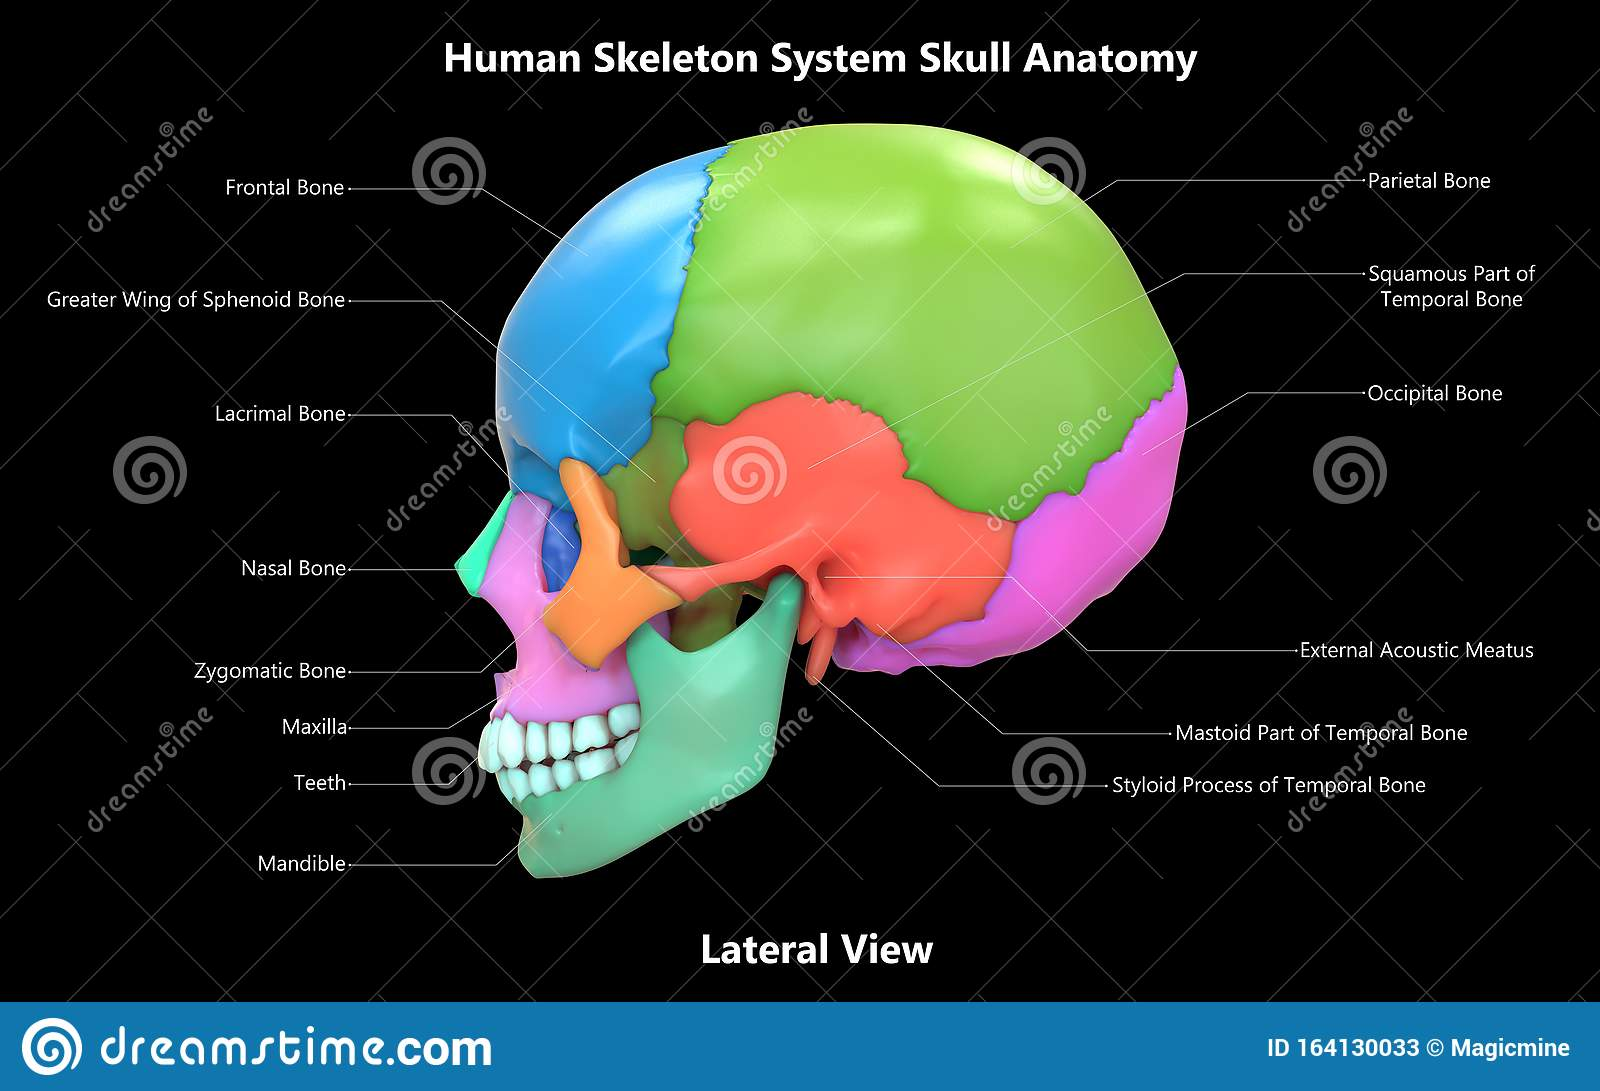 Skull A Part Of Human Skeleton System Anatomy With